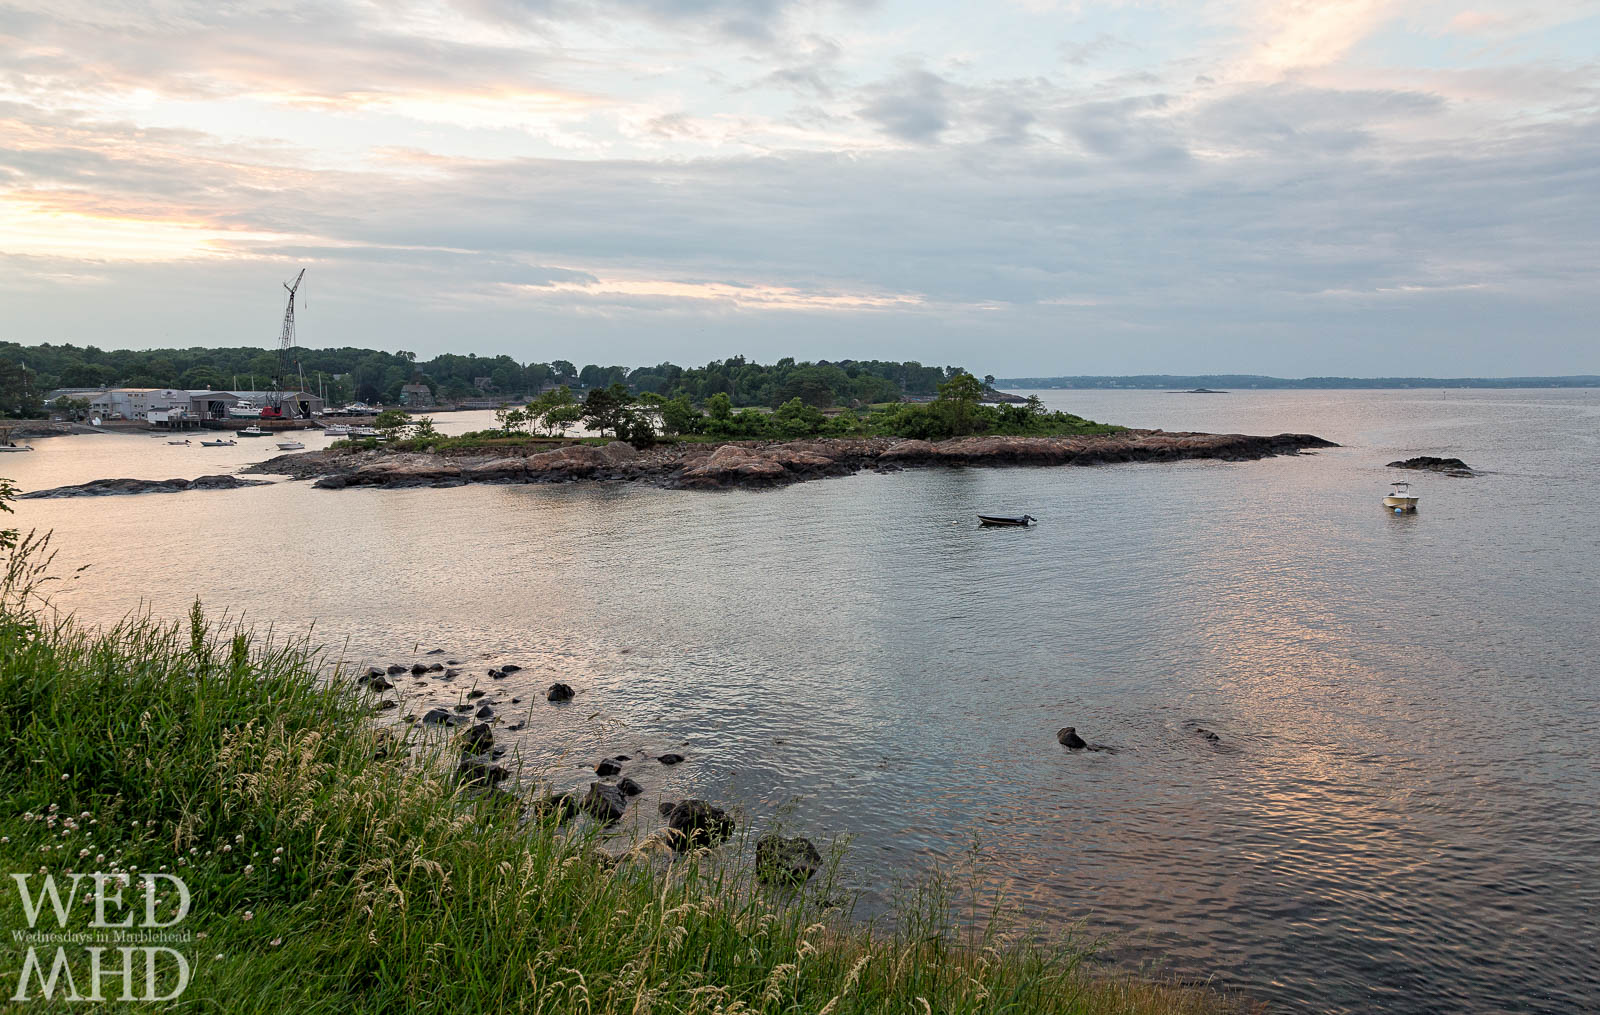 Looking out over Gerry Island from Fort Sewall